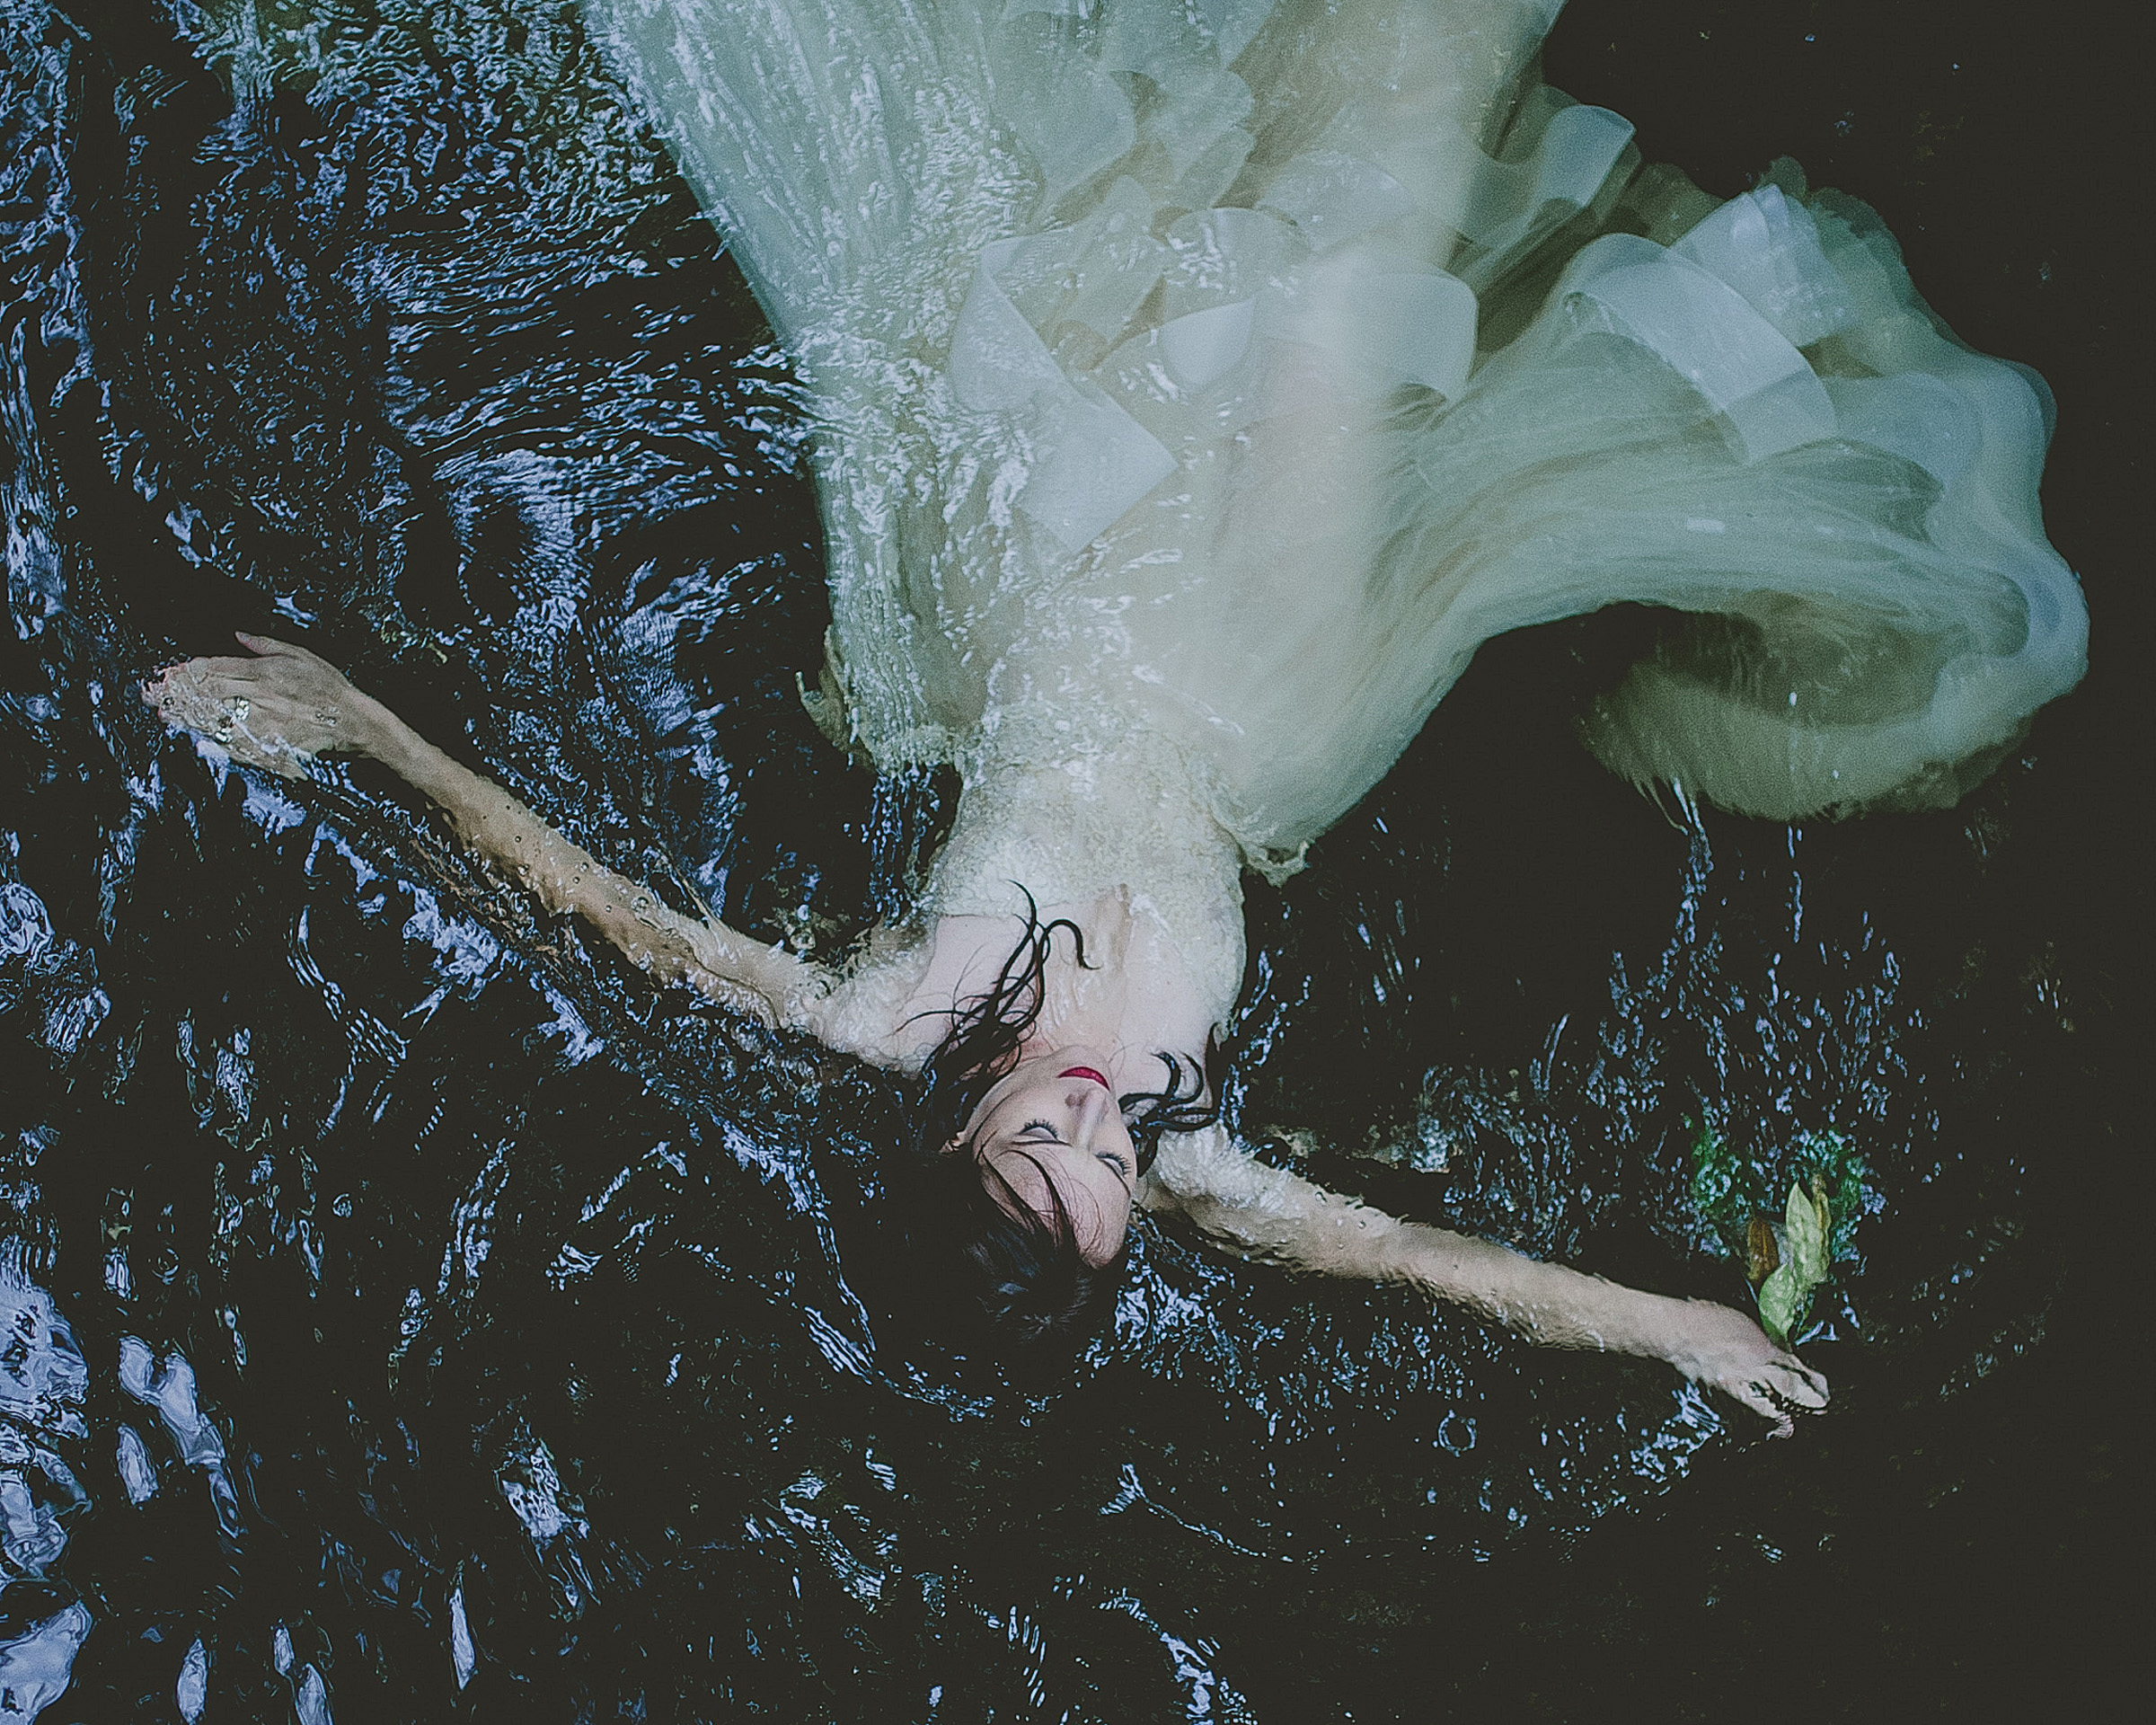 Bride in gown floating in water by Richard Israel